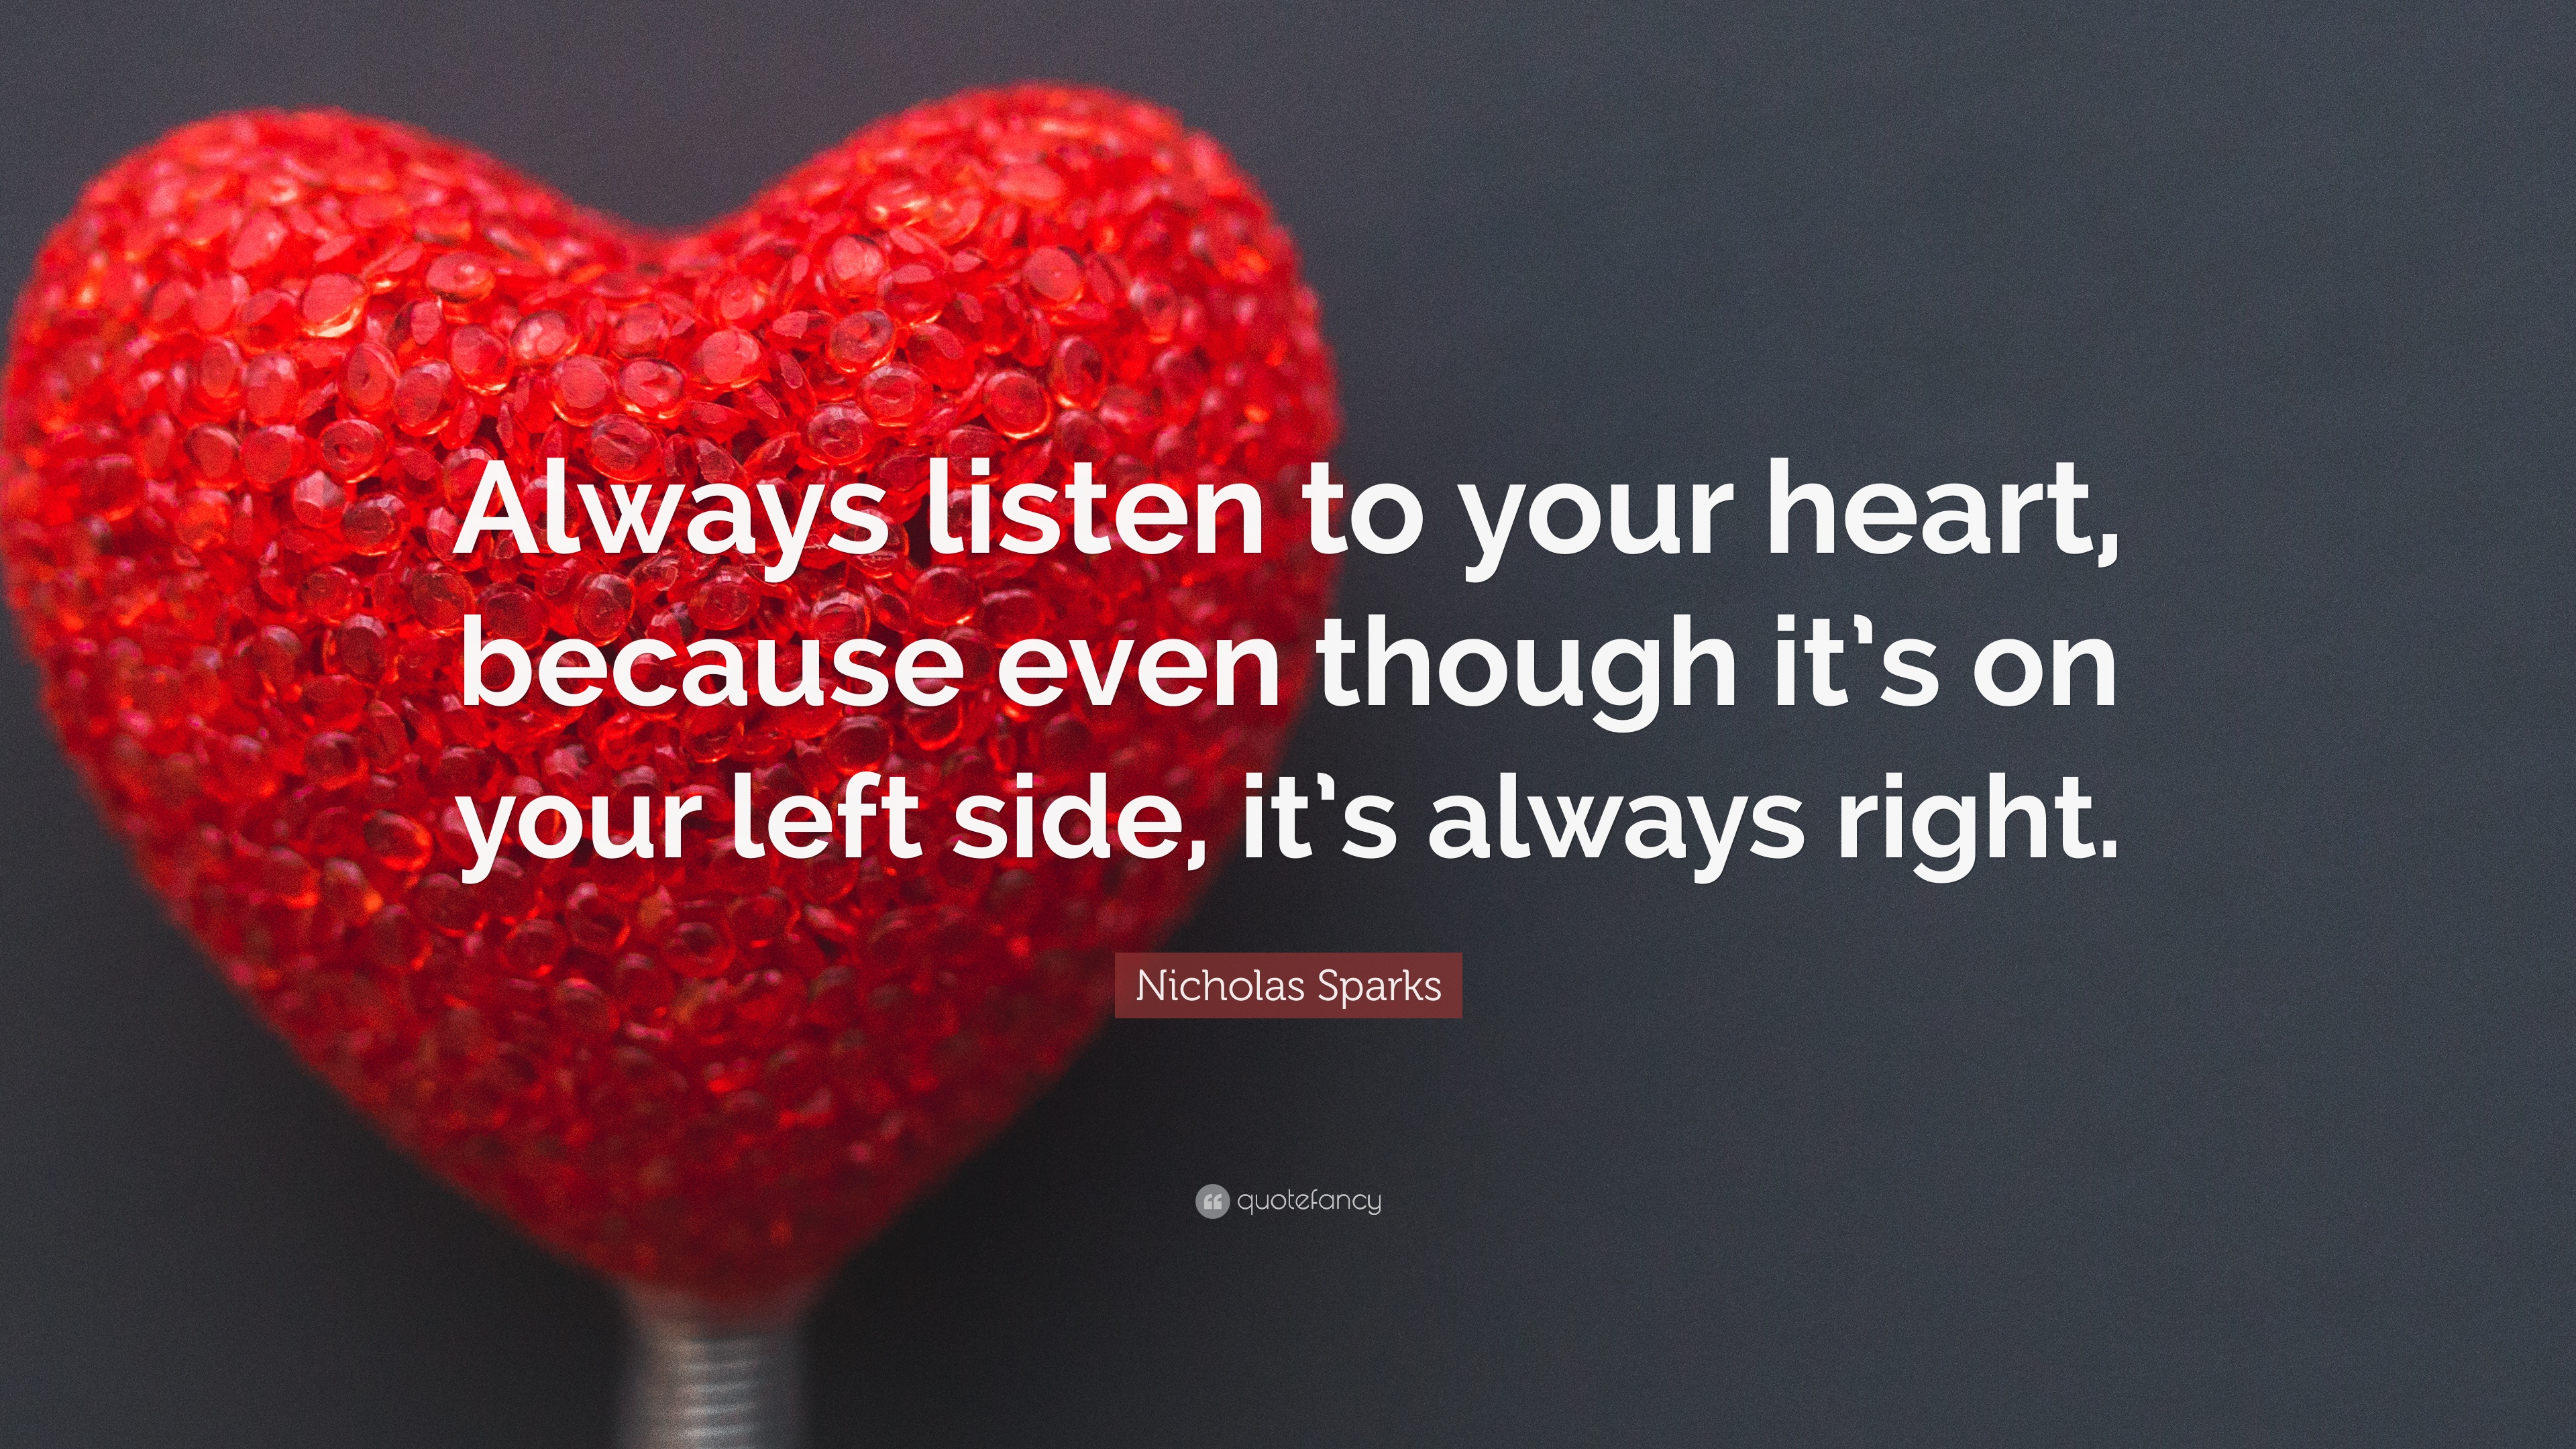 Quotes About Heart 40 Wallpapers Quotefancy